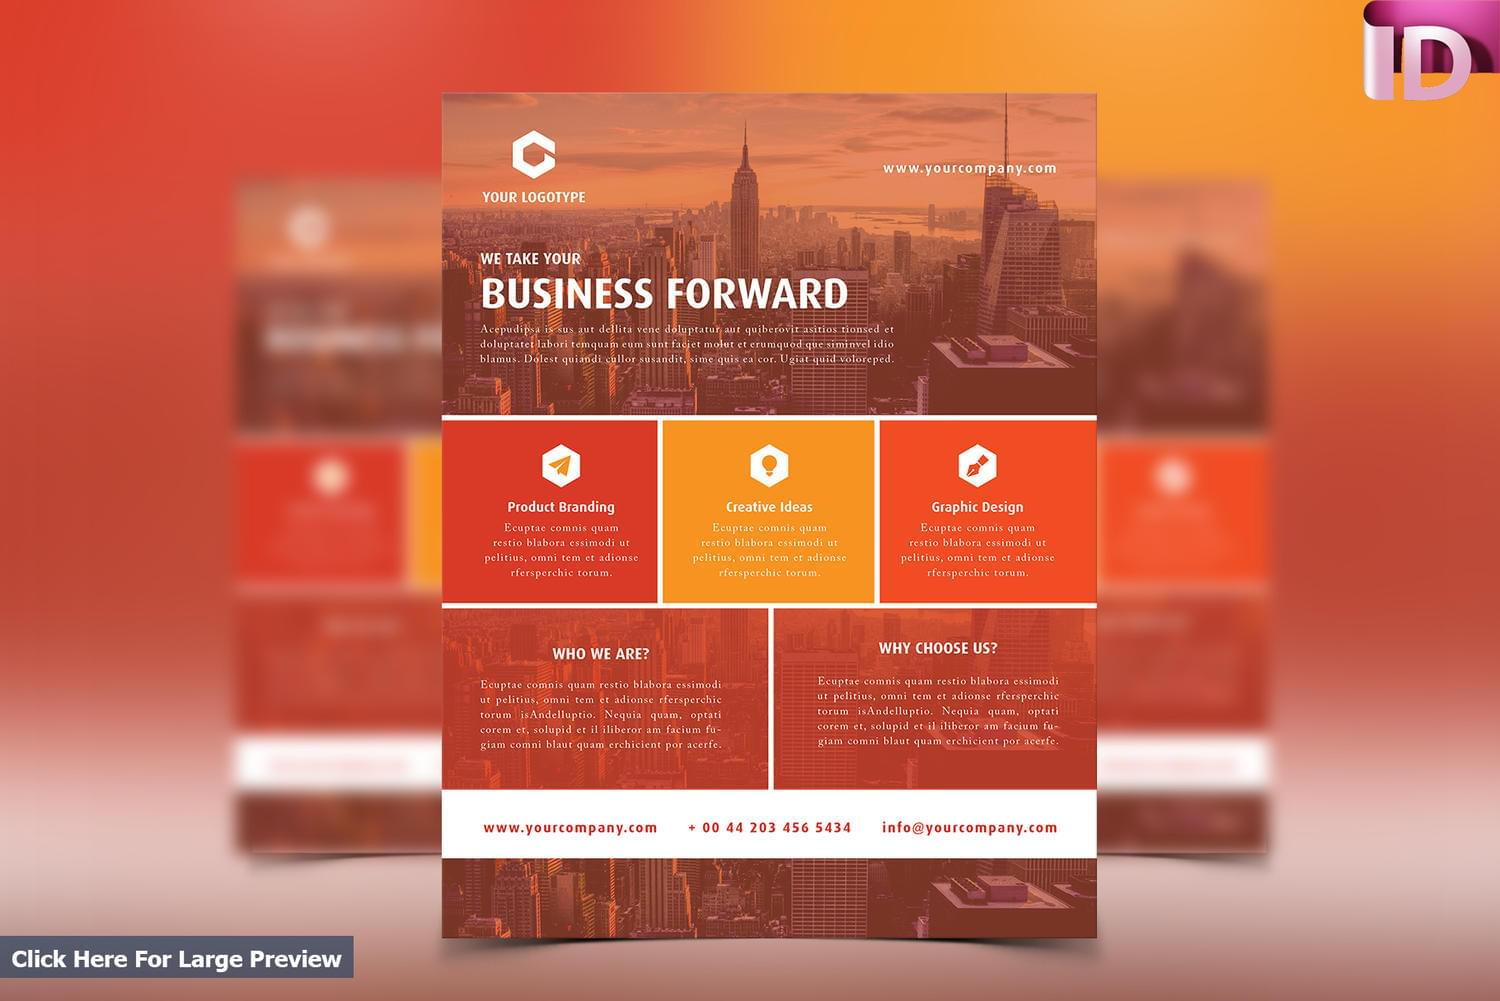 Professional Corporate/Business Flyer Design by carlos_fernando - 111072